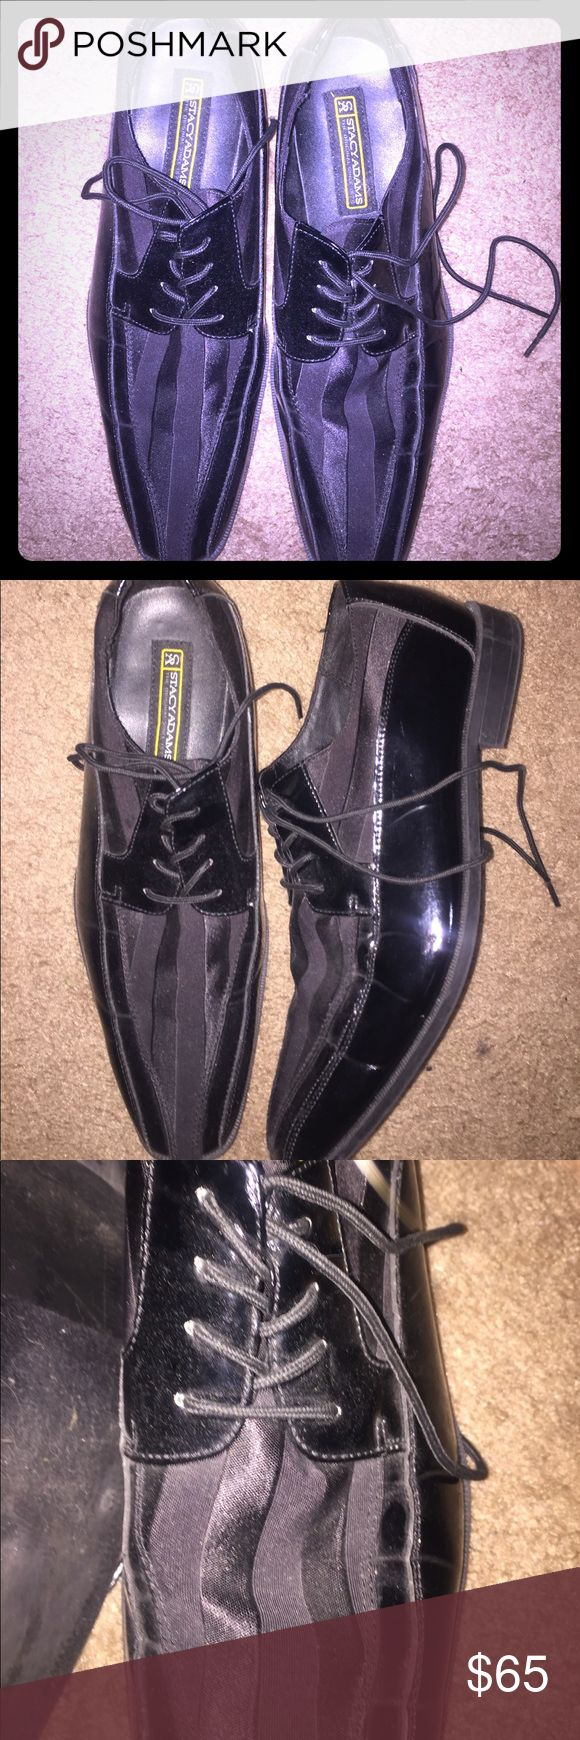 New! Spankin new men's dress shoes perfect dress *hot!*brand new mens dress shoes! Leather and felt material perfect for any dress occasion Stacy Adams Shoes Oxfords & Derbys